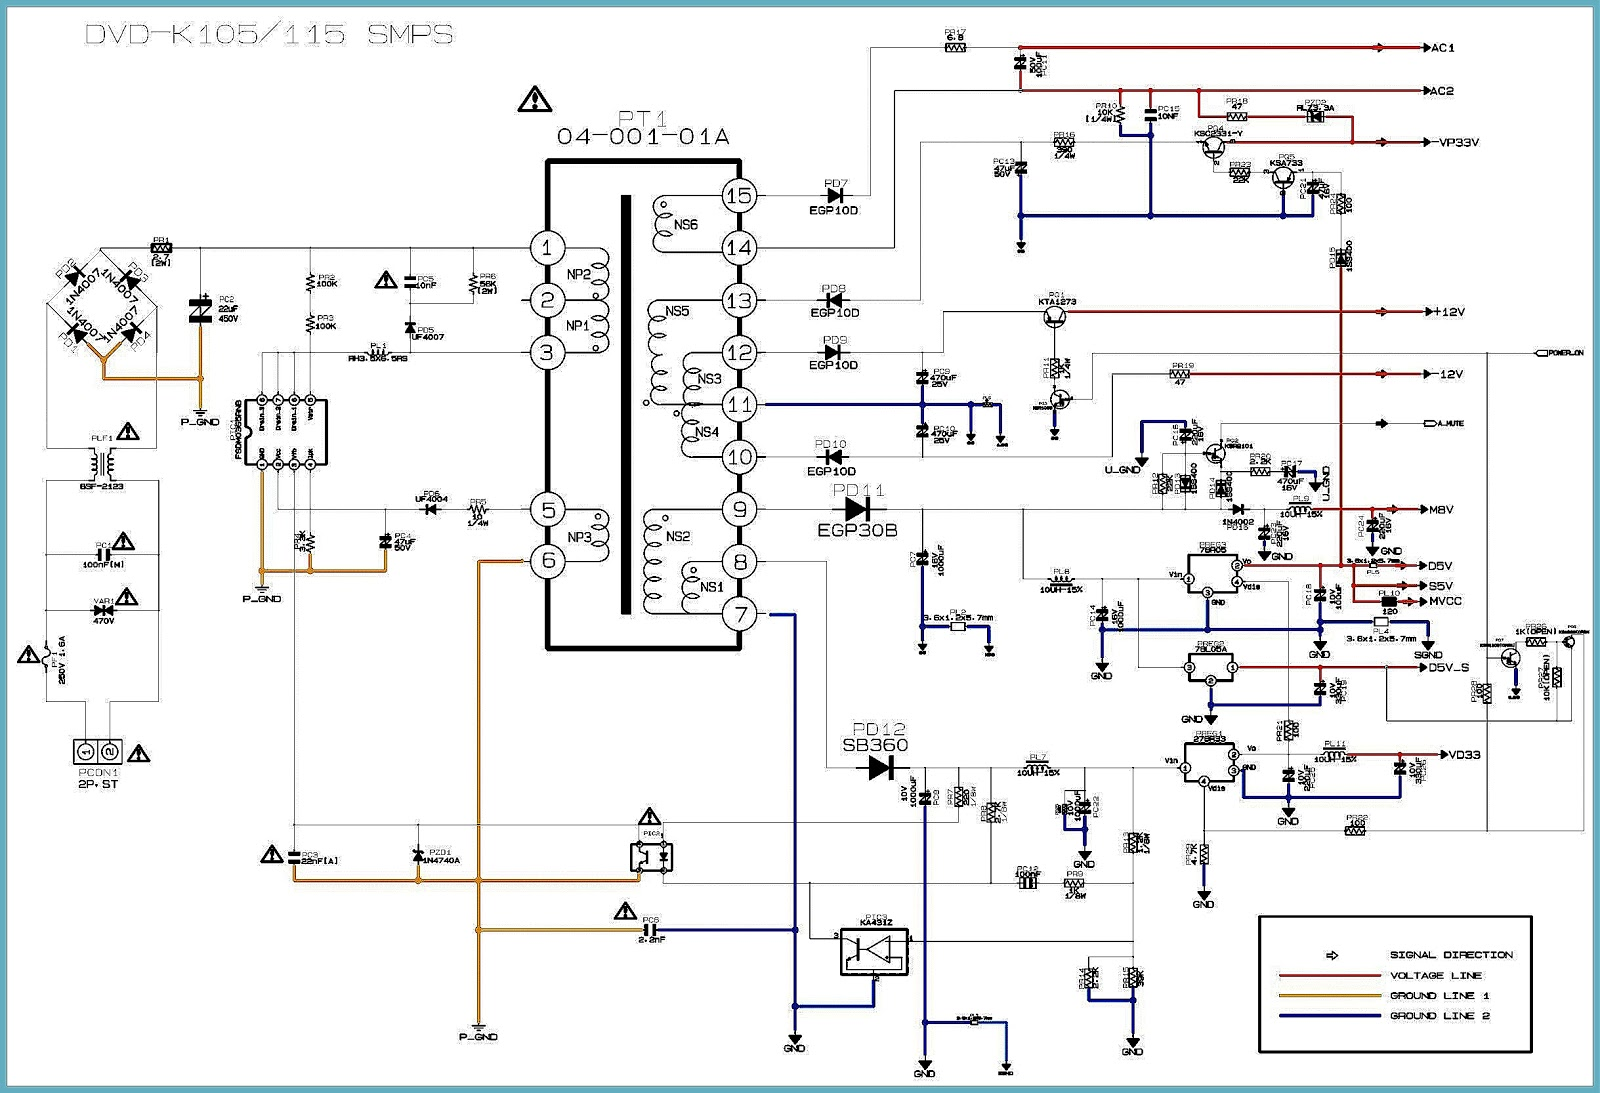 small resolution of samsung dvd wiring diagram wiring diagram log samsung dvd wiring diagram wiring diagrams tar samsung dvd